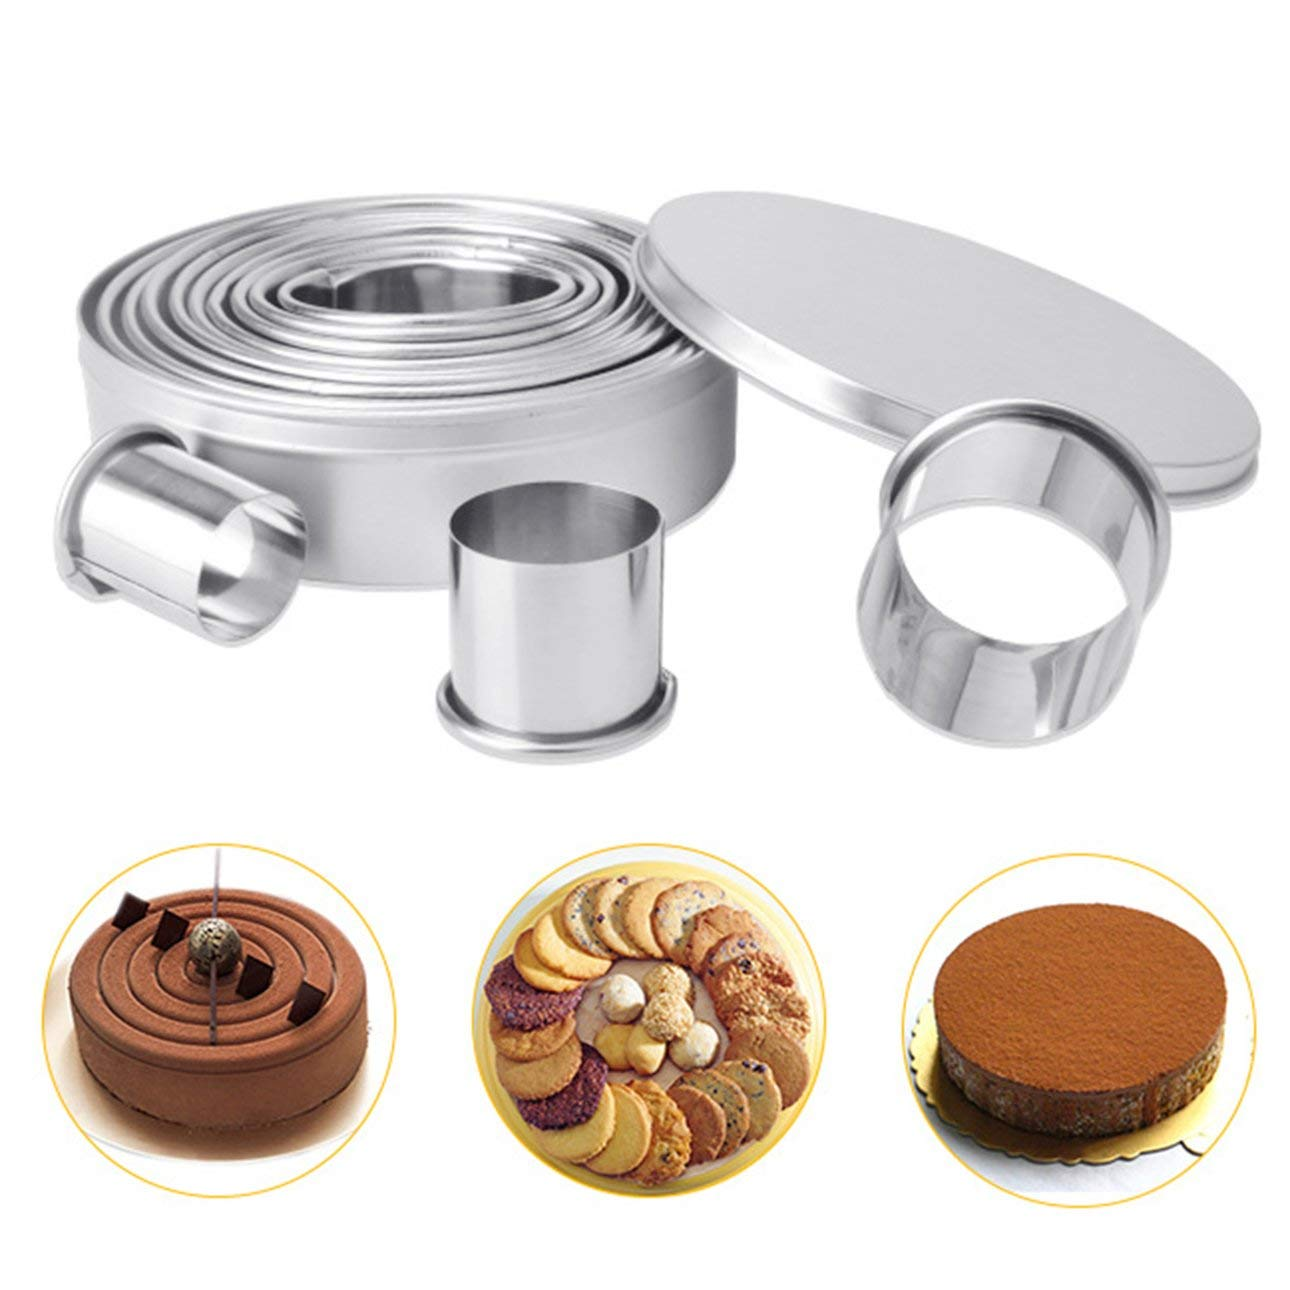 cookie cutter stainless steel